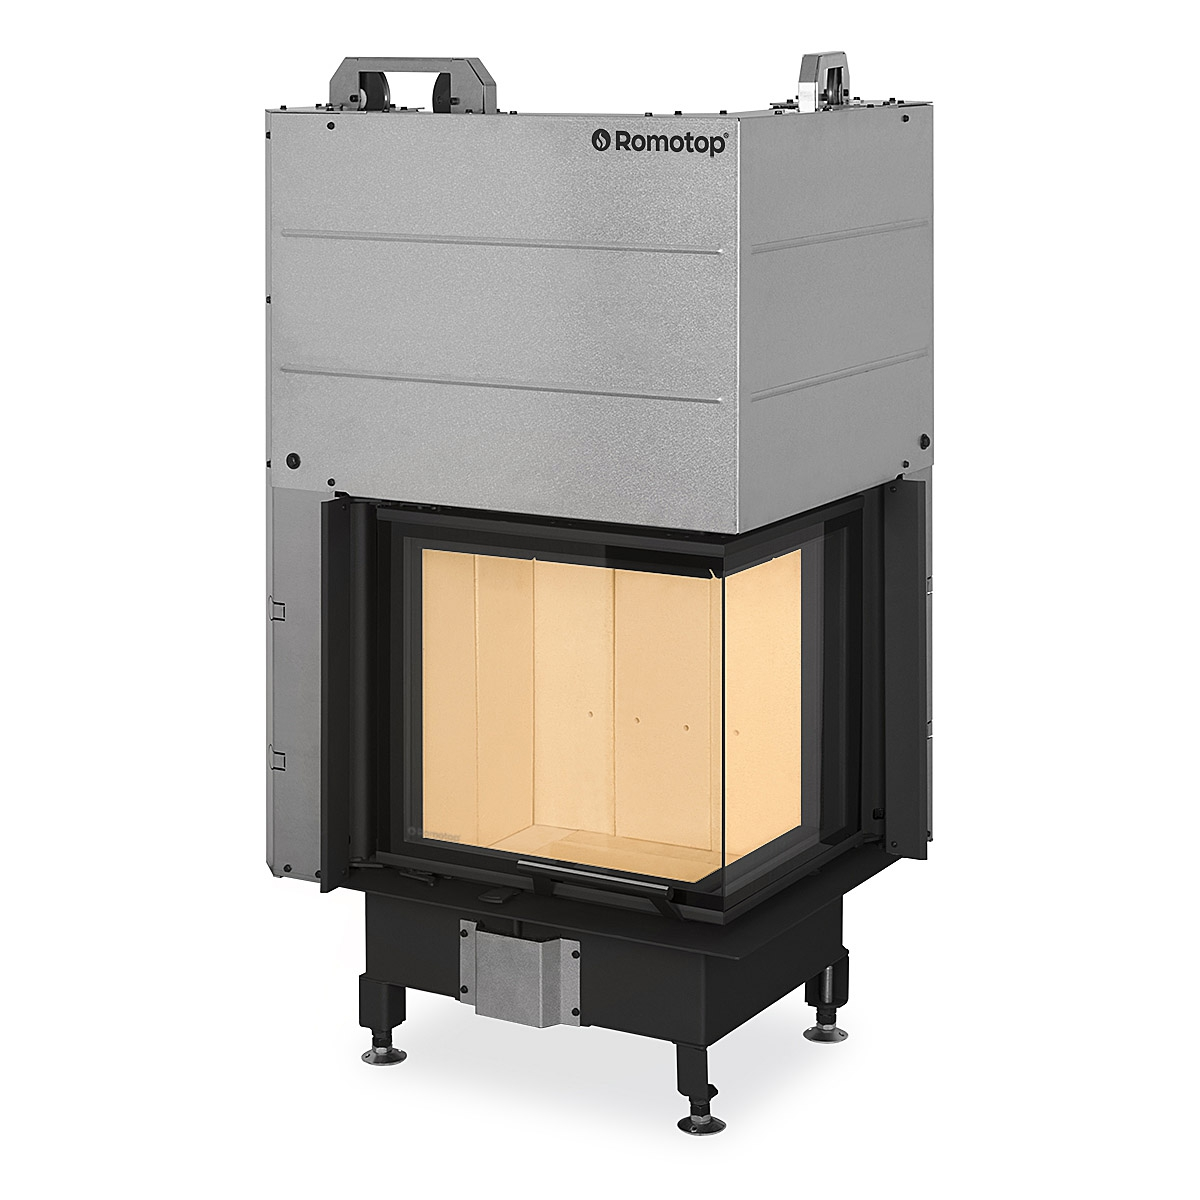 HEAT R/L 3g L 50.51.40.21 - hot-air corner fireplace insert with lifting door and split glazing